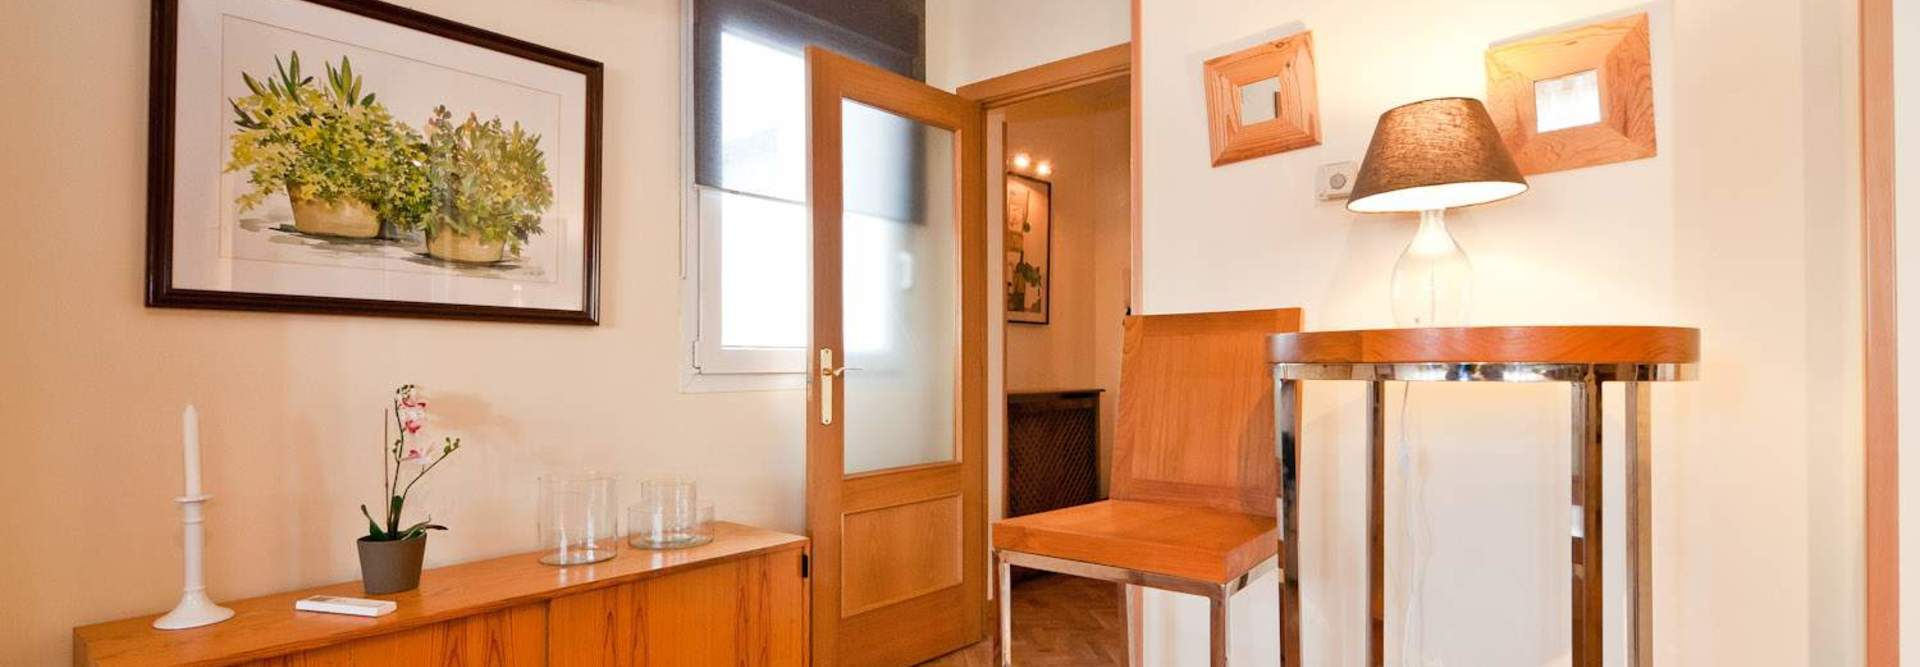 Home alquiler apartamento madrid centro mad4rent  21